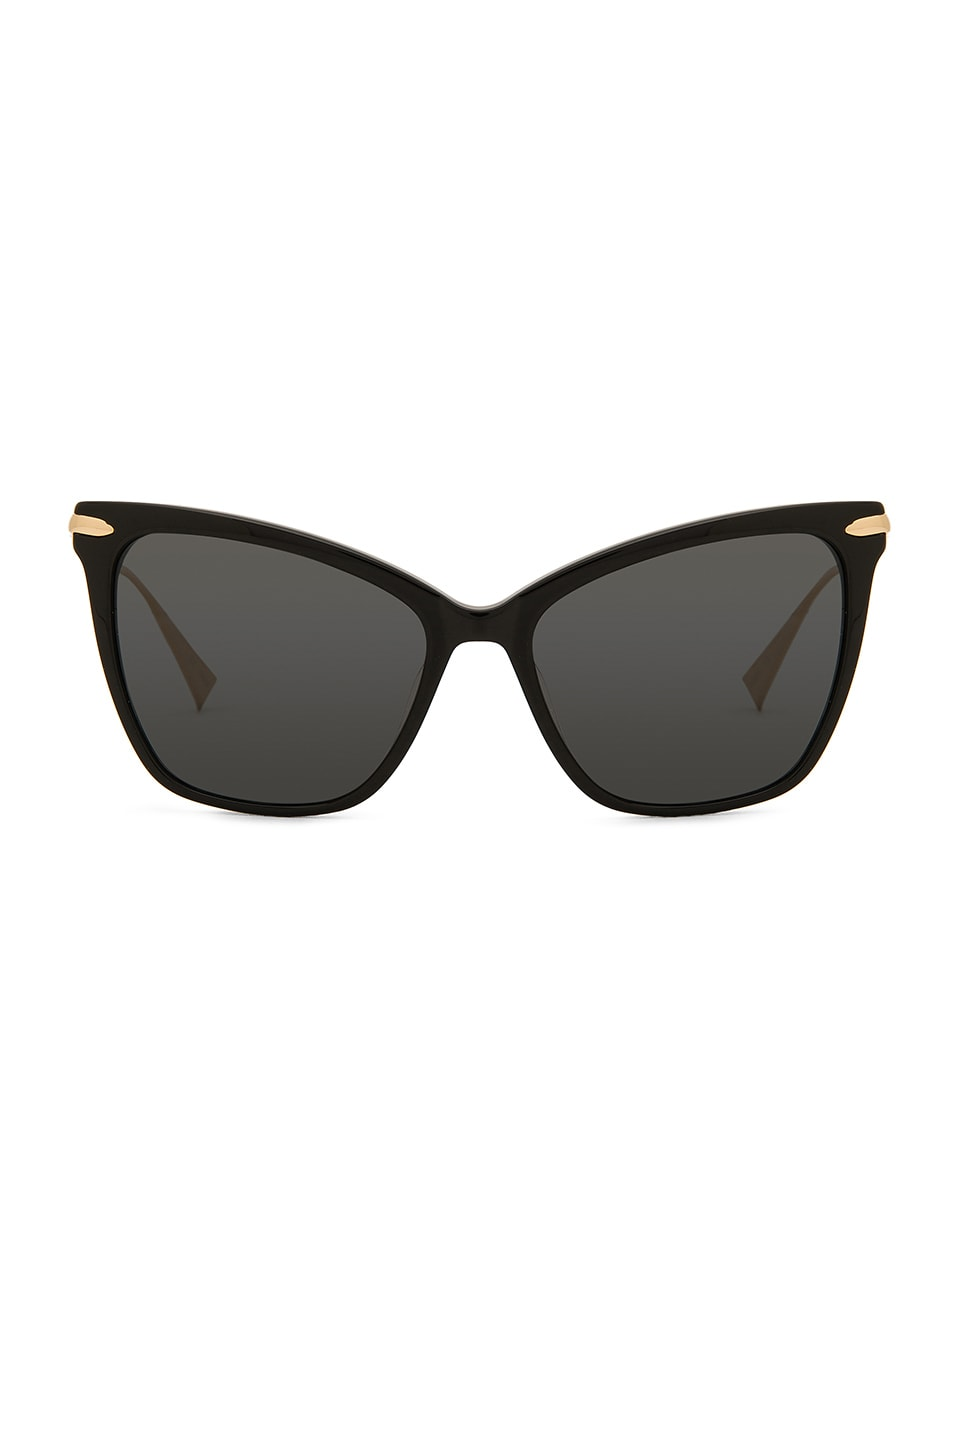 Hadid Eyewear Jet Setter in Black & Gold